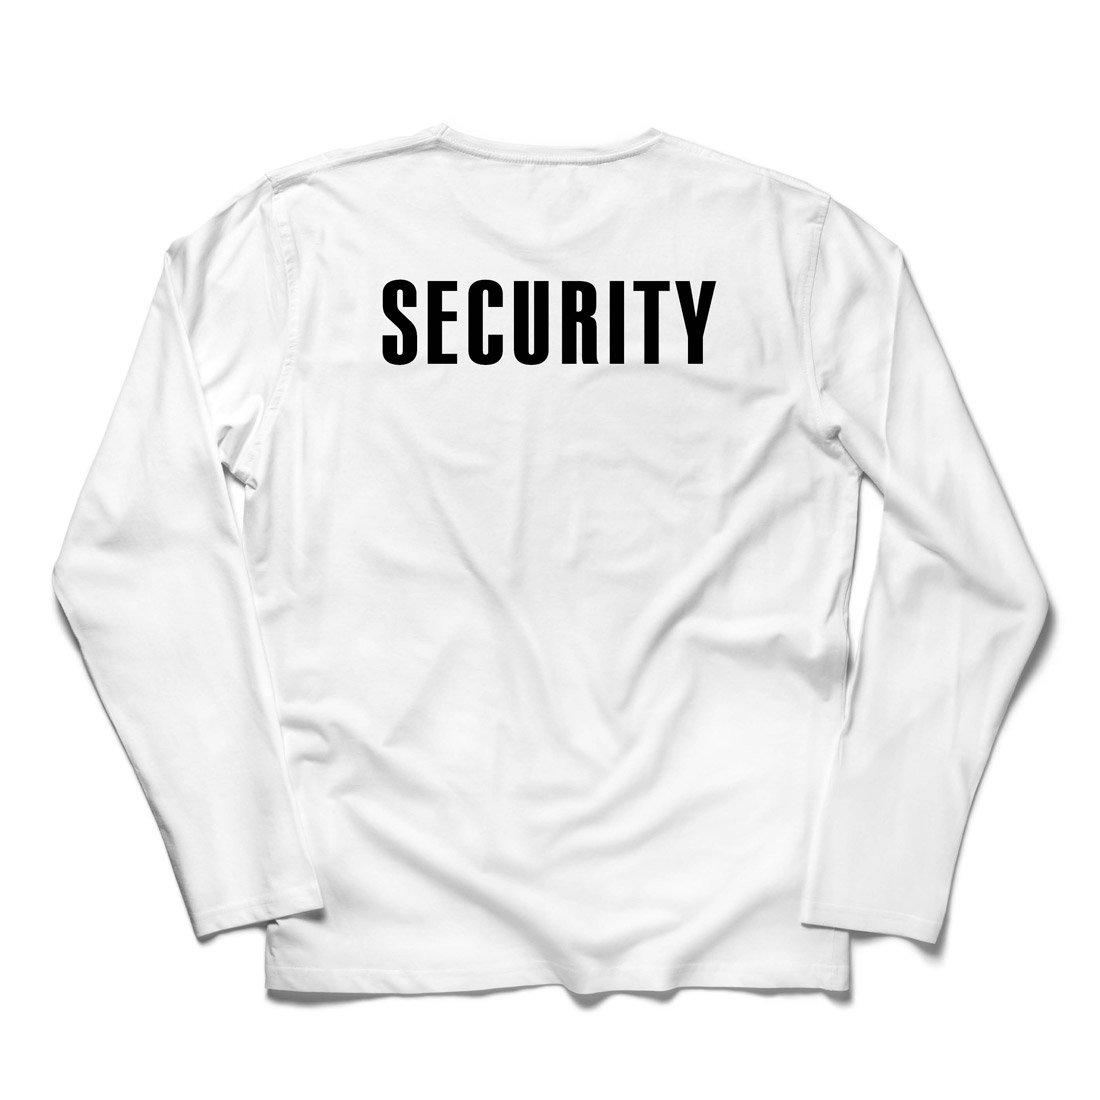 Bodyguard Crew Event Staff and Party lepni.me Men/'s T-Shirt Security